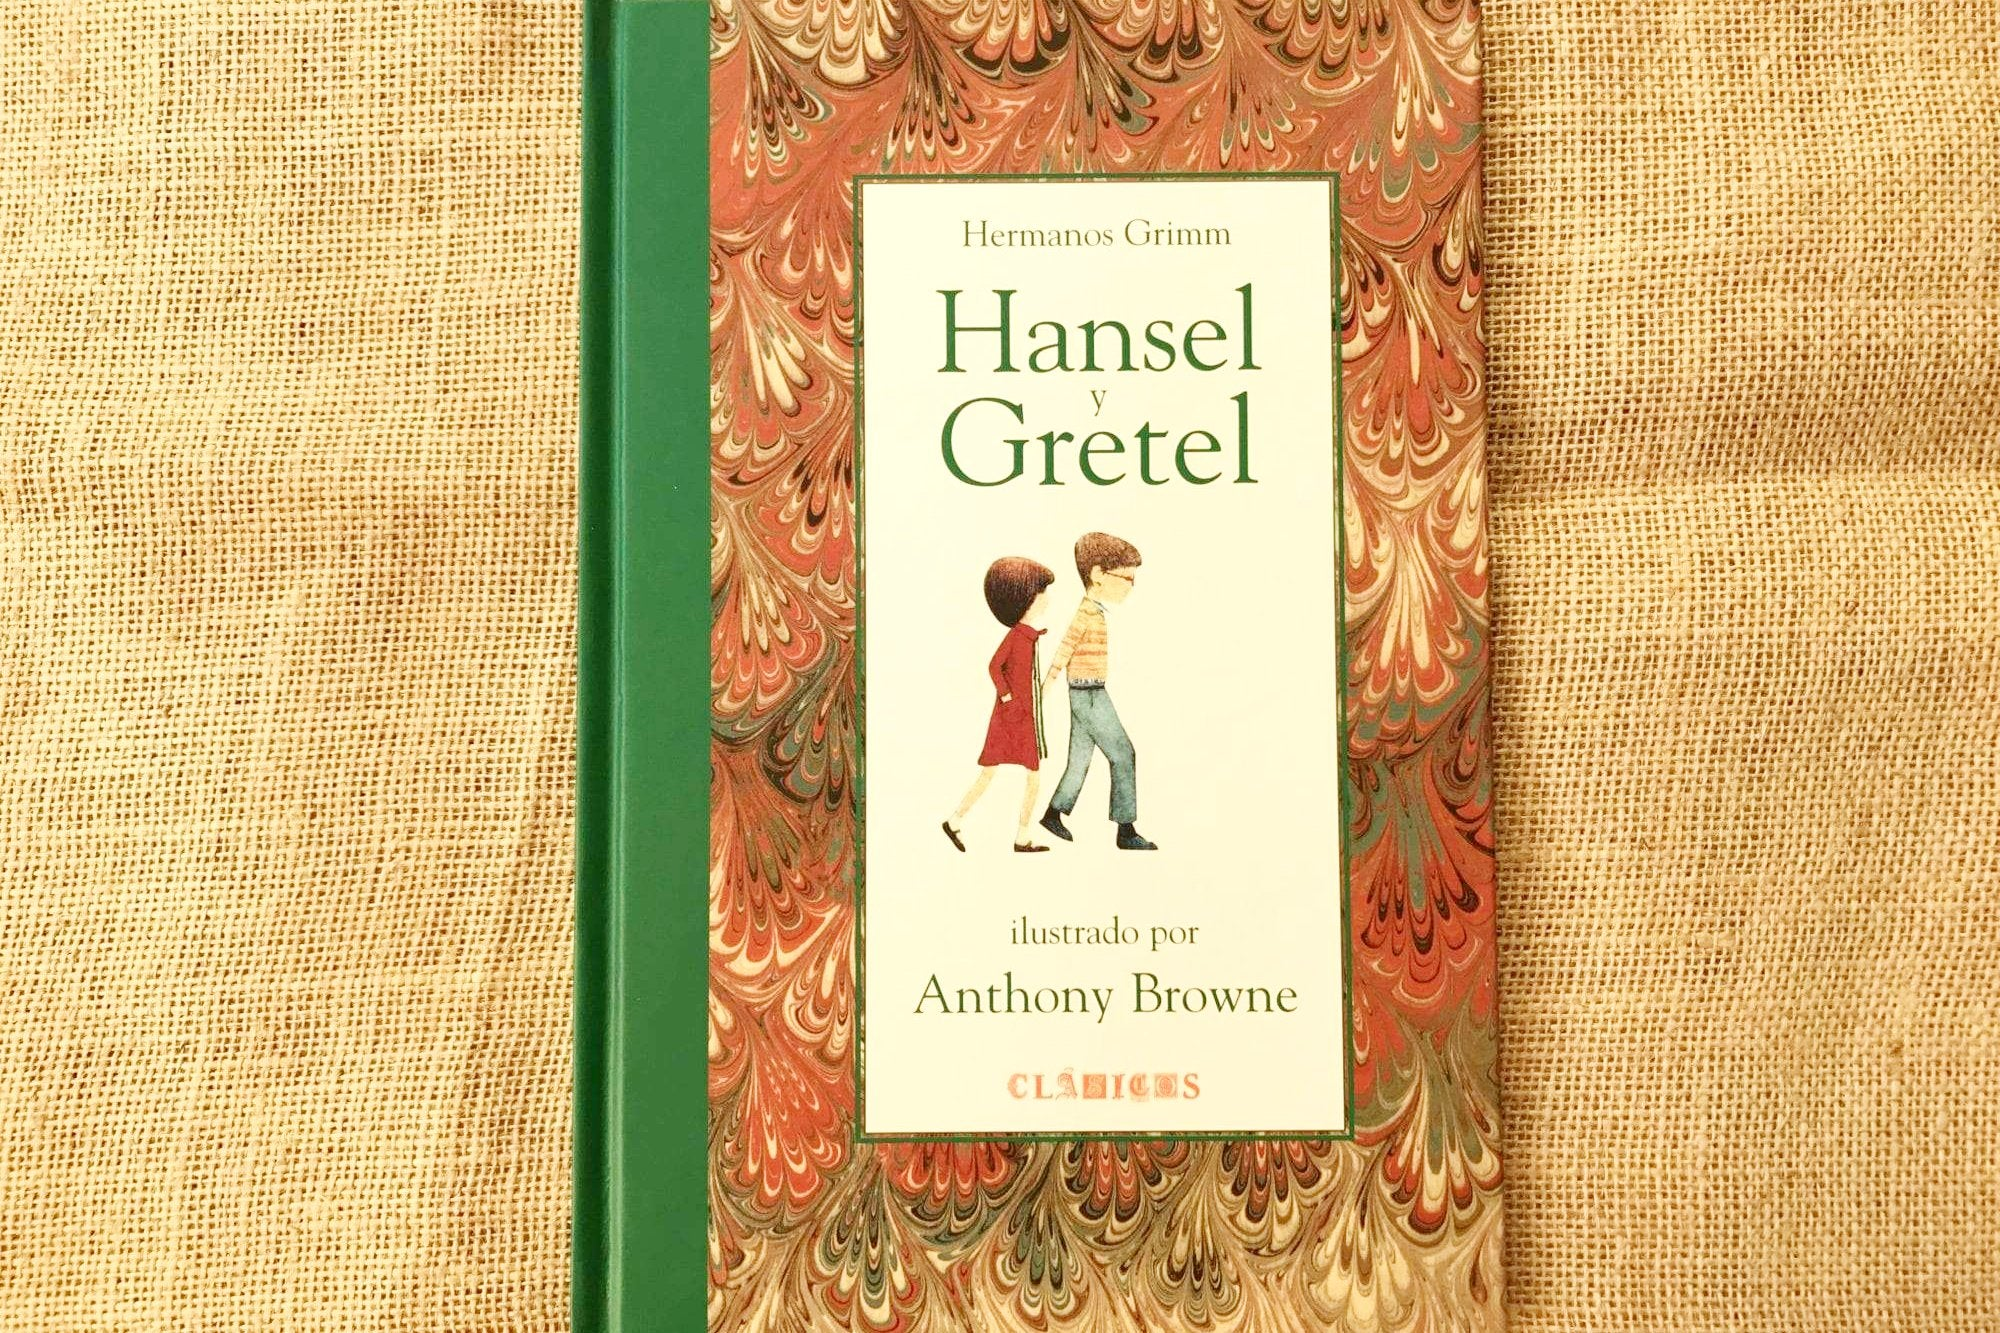 hansel y gretel anthony browne fce portada